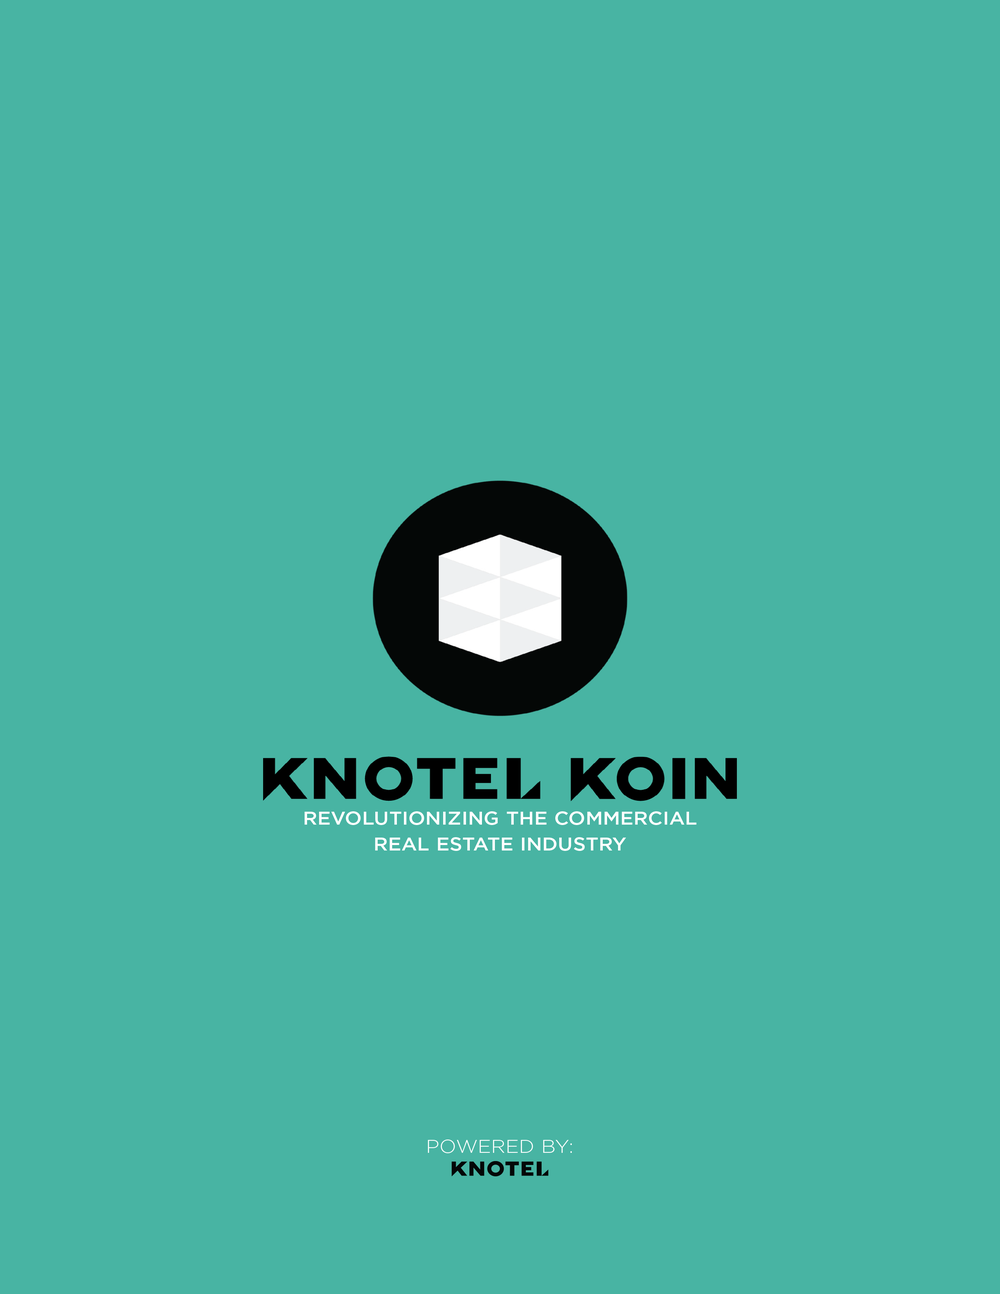 KnotelKoinWP_V9-1.png